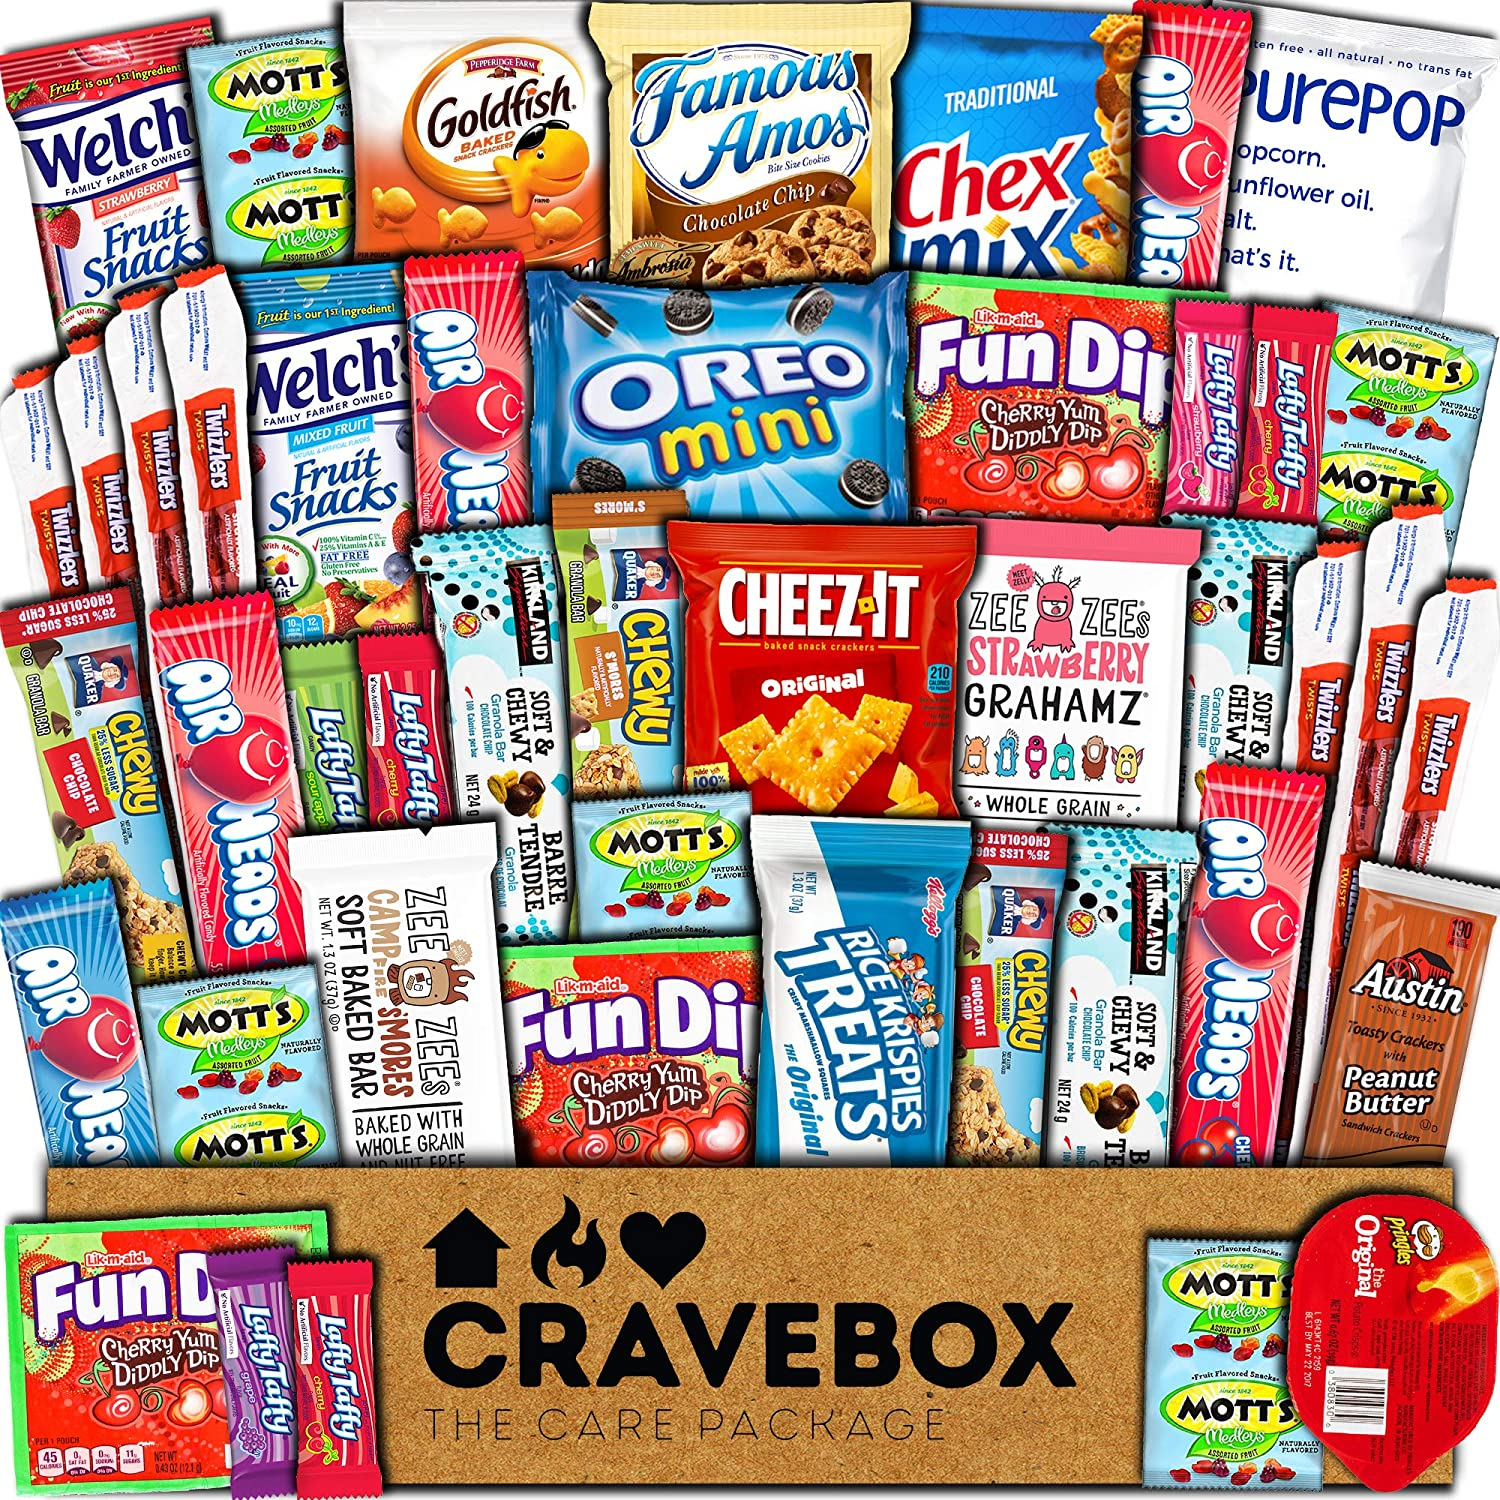 B01N22CM3F CraveBox Care Package (45 Count) Snacks Food Cookies Chocolate Bar Chips Candy Ultimate Variety Gift Box Pack Assortment Basket Bundle Mix Bulk Sampler Treats College Students Final Exam Office Summer A12TsI2BEqcL